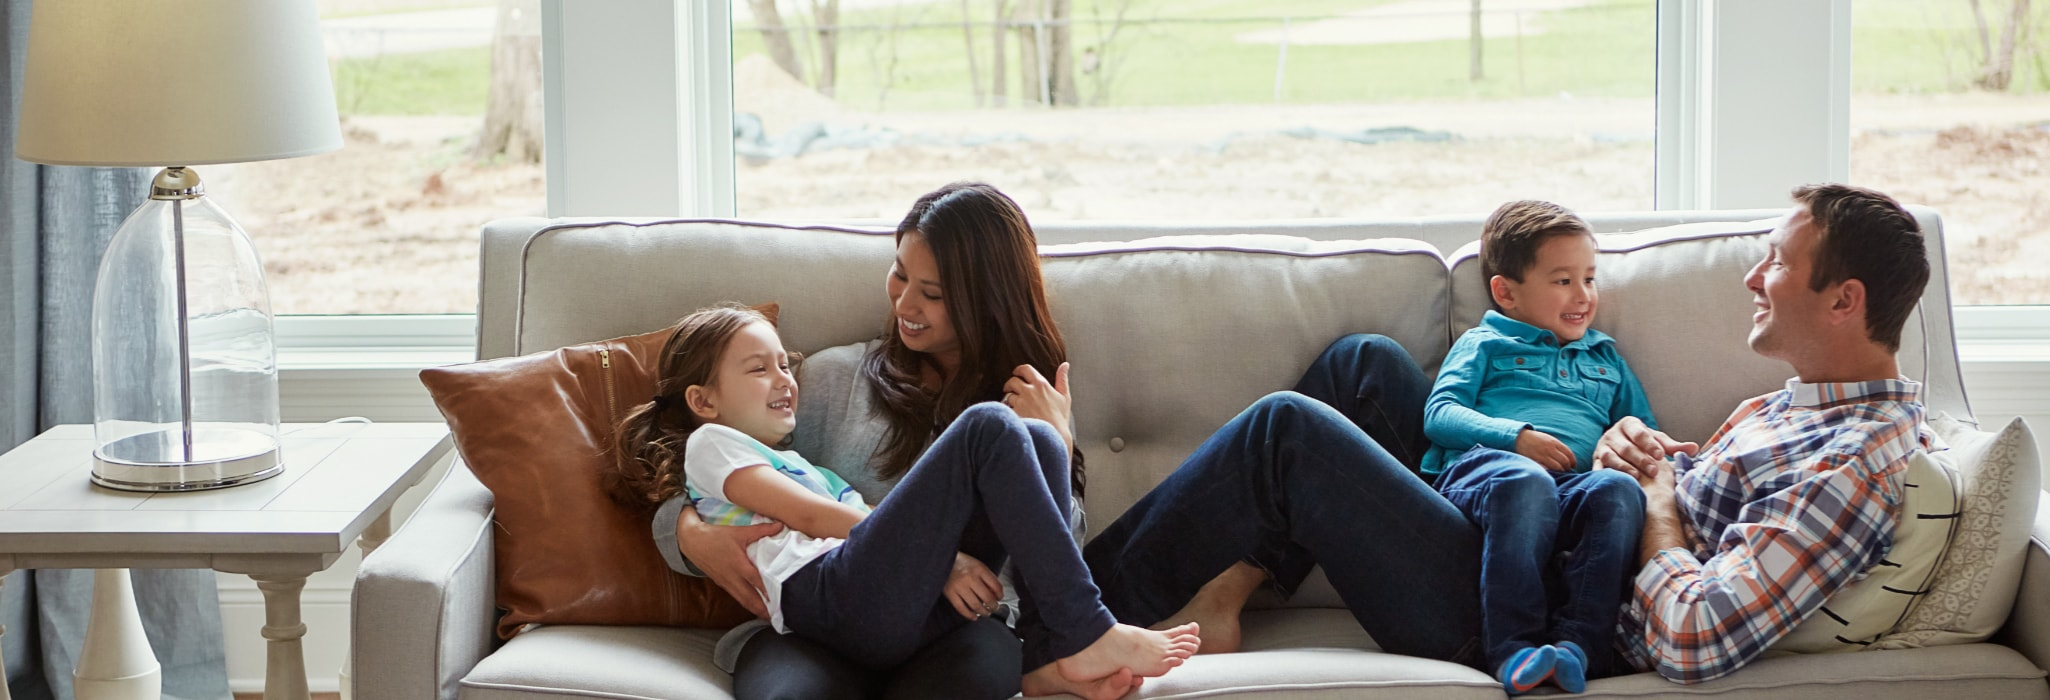 Family on couch in comfortable warm house